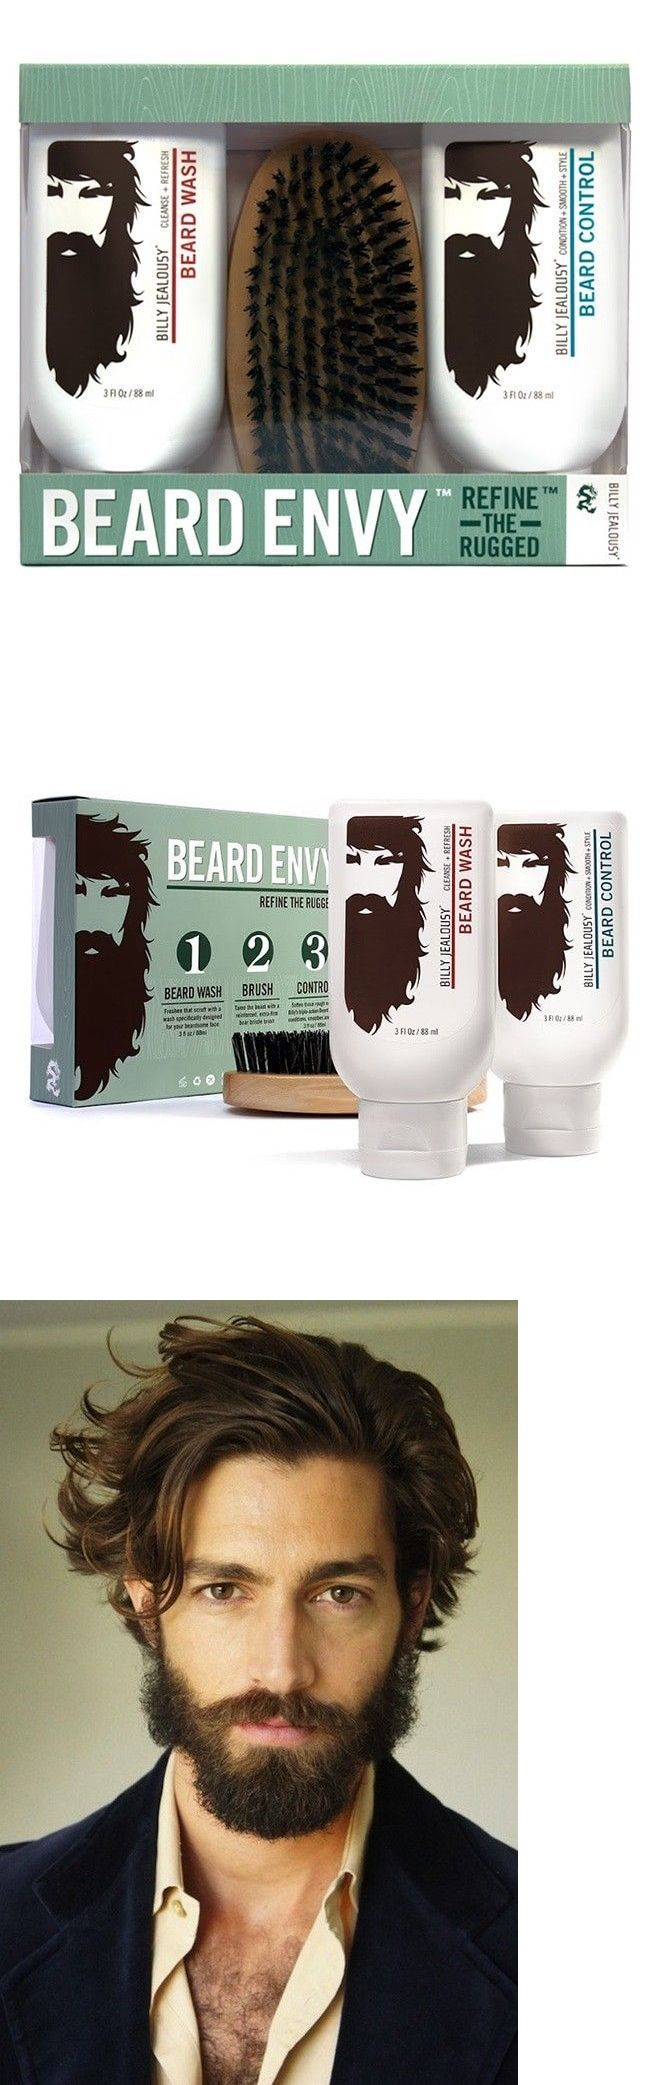 Shaving and Grooming Kits and Sets: Beard Grooming Kit Shampoo Conditioner Brush Set Mens Gift Personal Care Pack BUY IT NOW ONLY: $36.78